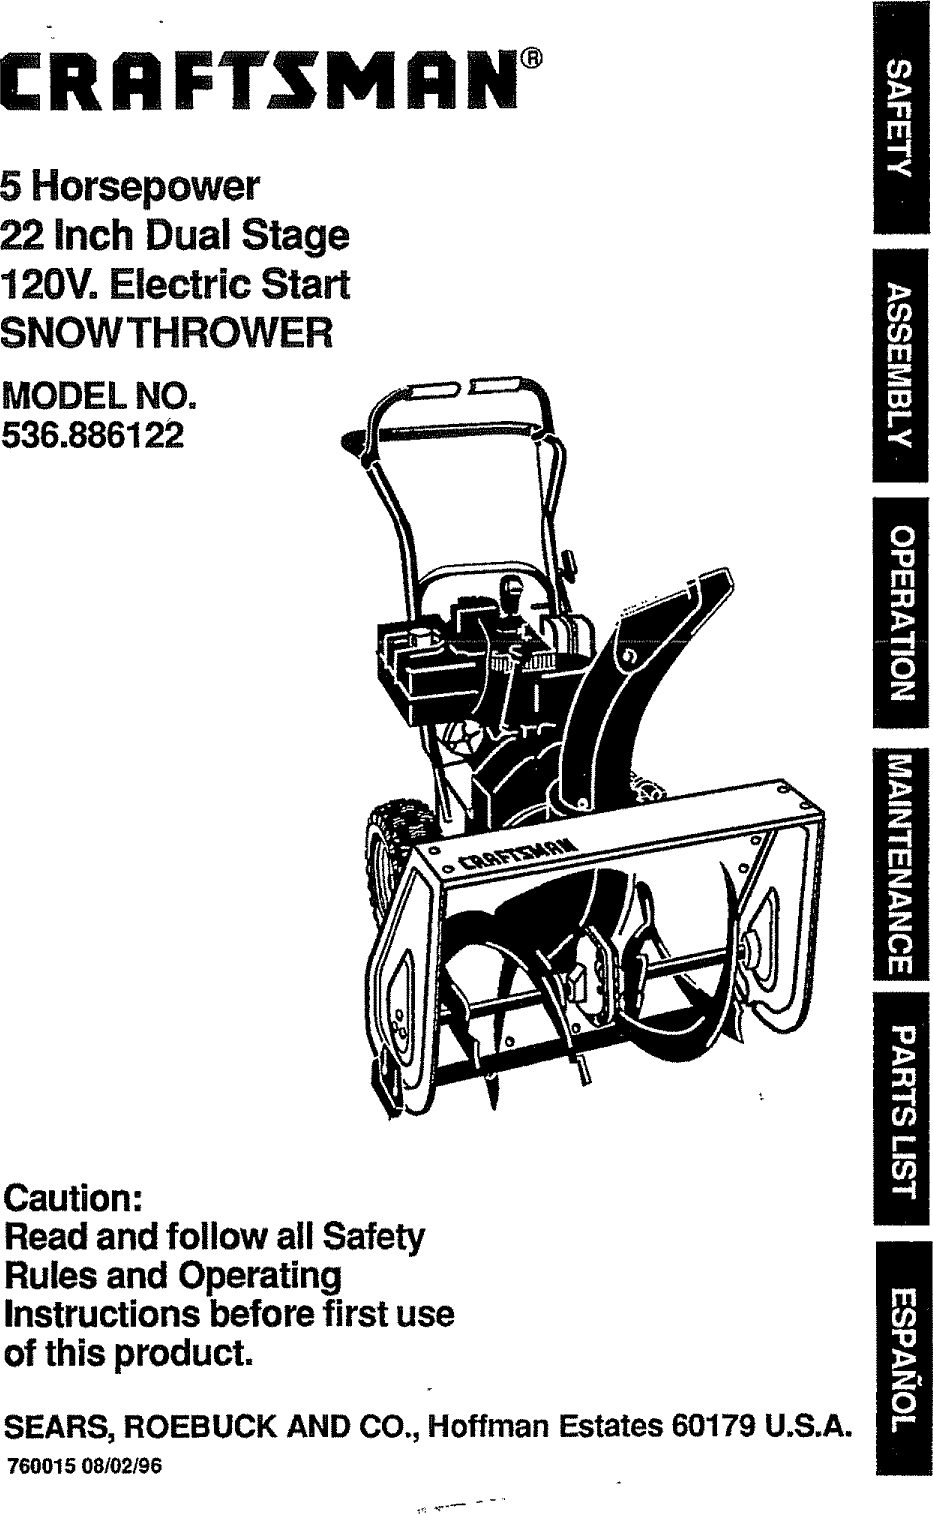 craftsman 536886122 user manual snow thrower manuals and guides l0912315 rh usermanual wiki